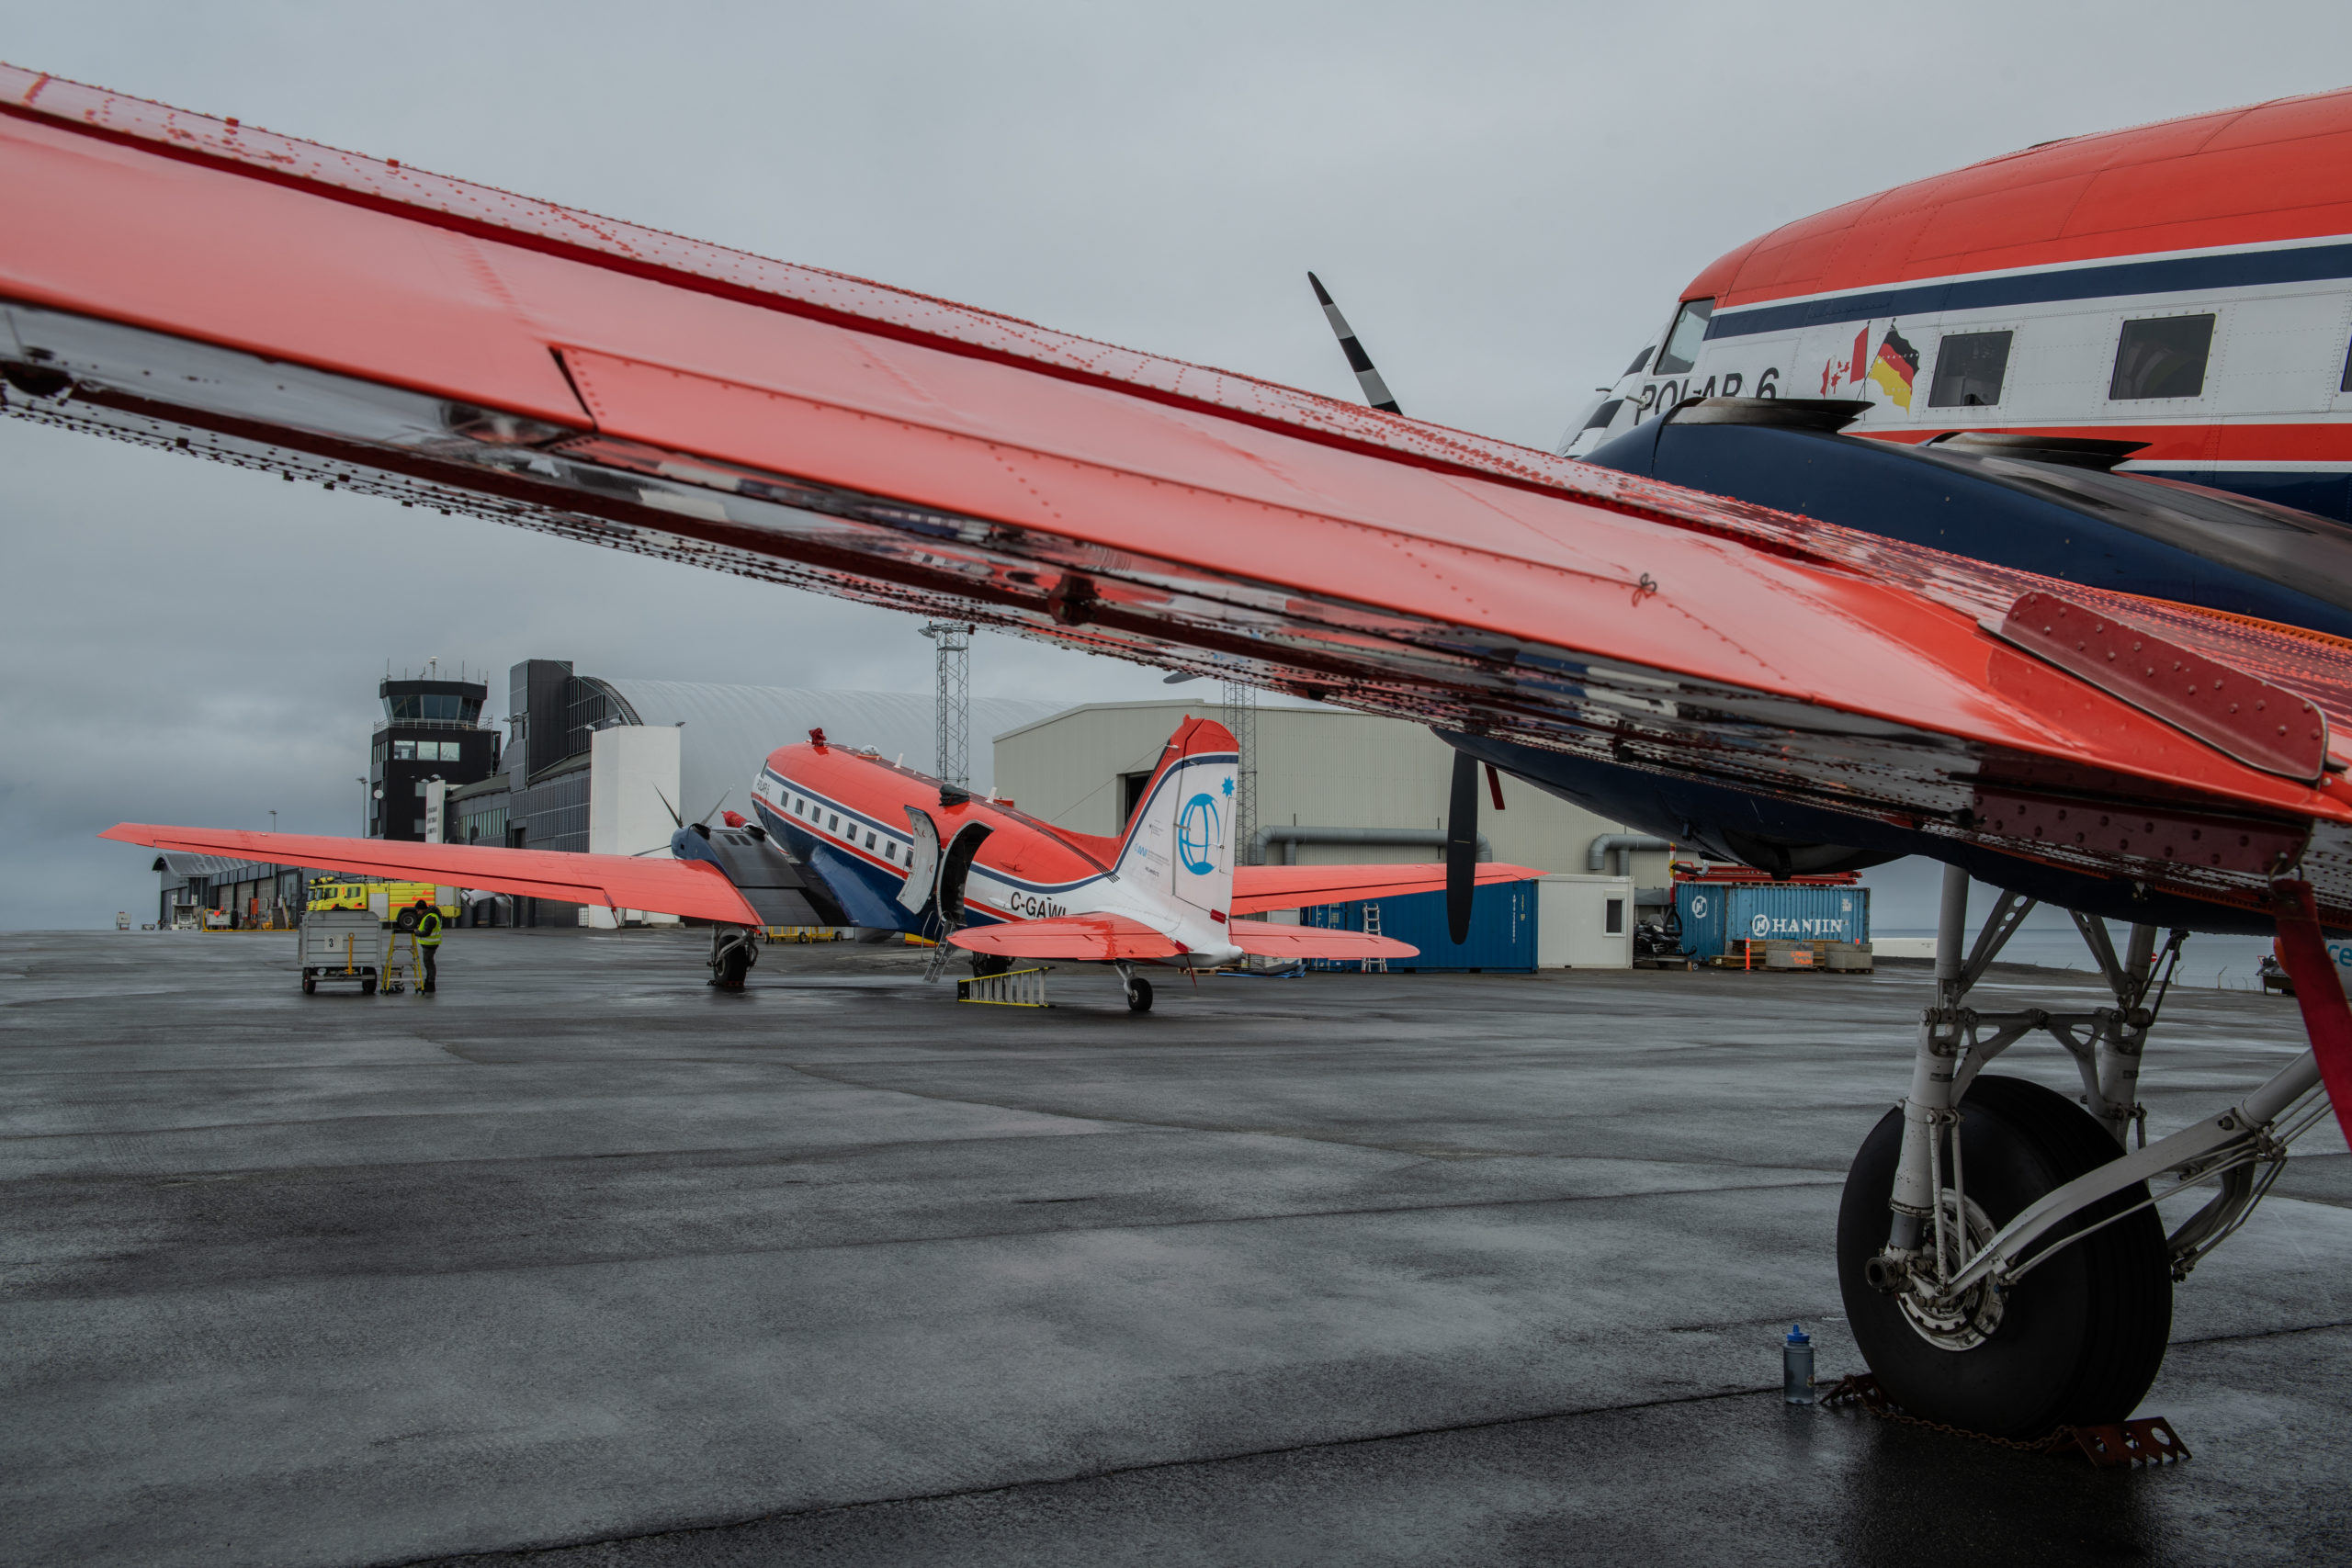 Polar 6 and Polar 5  at Svalbard airport, MOSAiC Airborne Campaign, September 2020. Picture: Alfred Wegener Institute / Esther Horvath